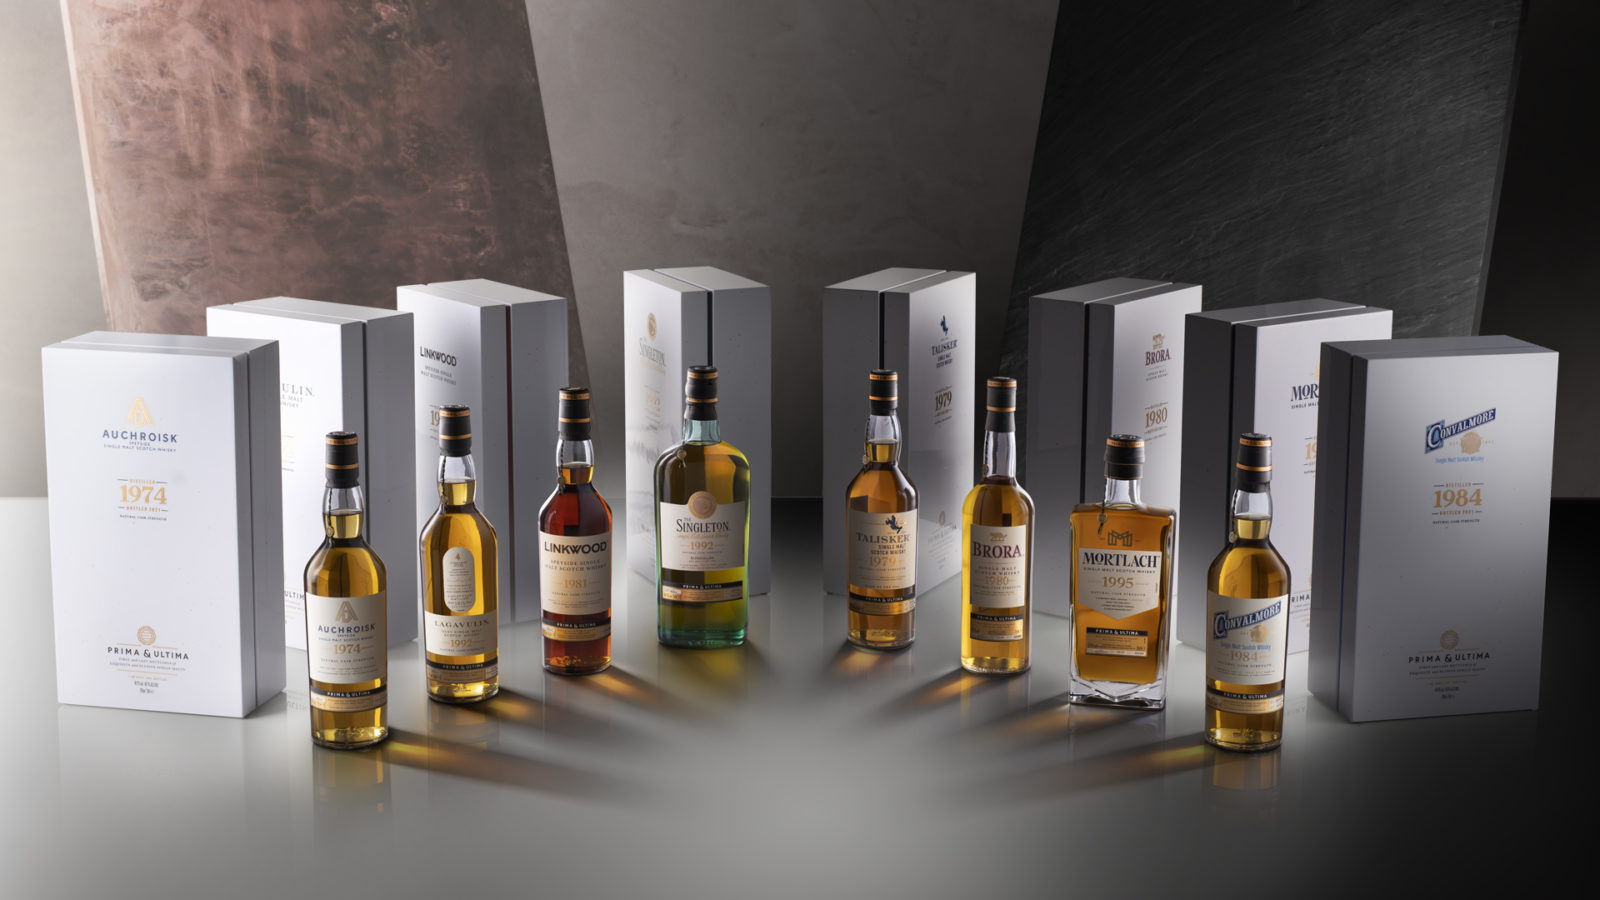 Diageo's Prima & Ultima Second Release is finally available in Singapore